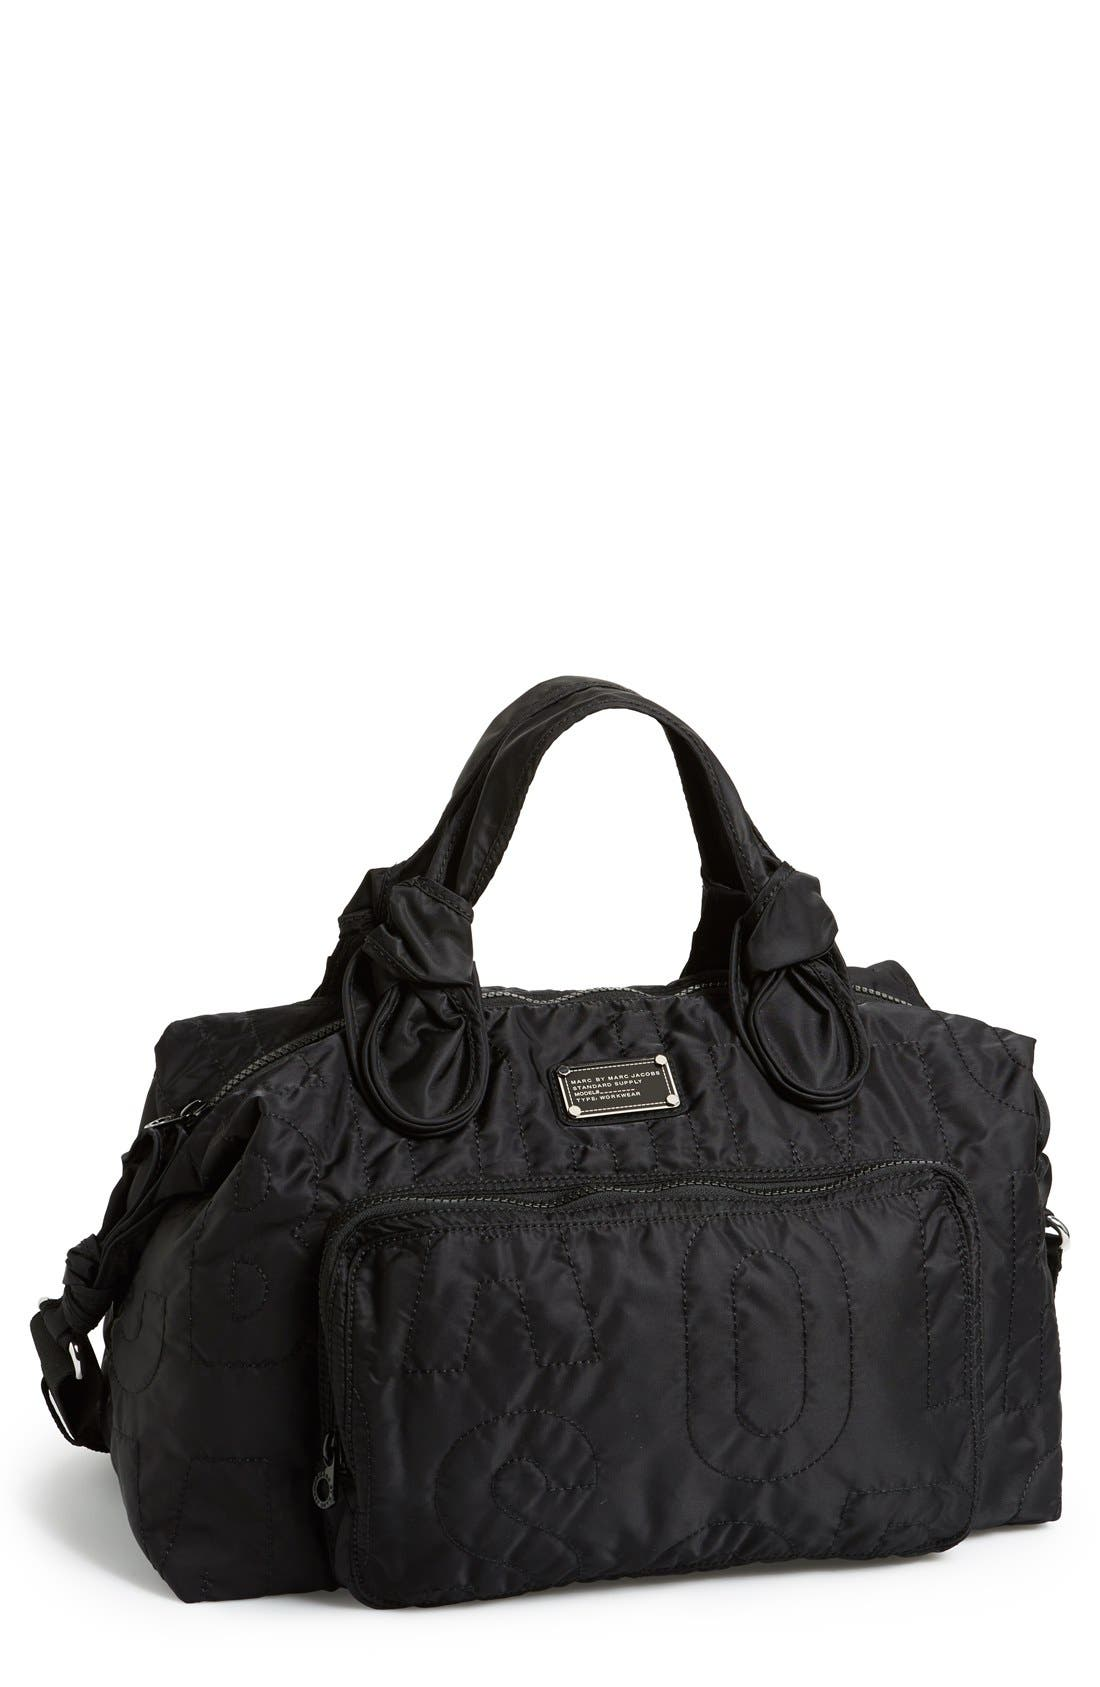 Main Image - MARC BY MARC JACOBS 'Preppy Nylon' Bag (18 Inch)